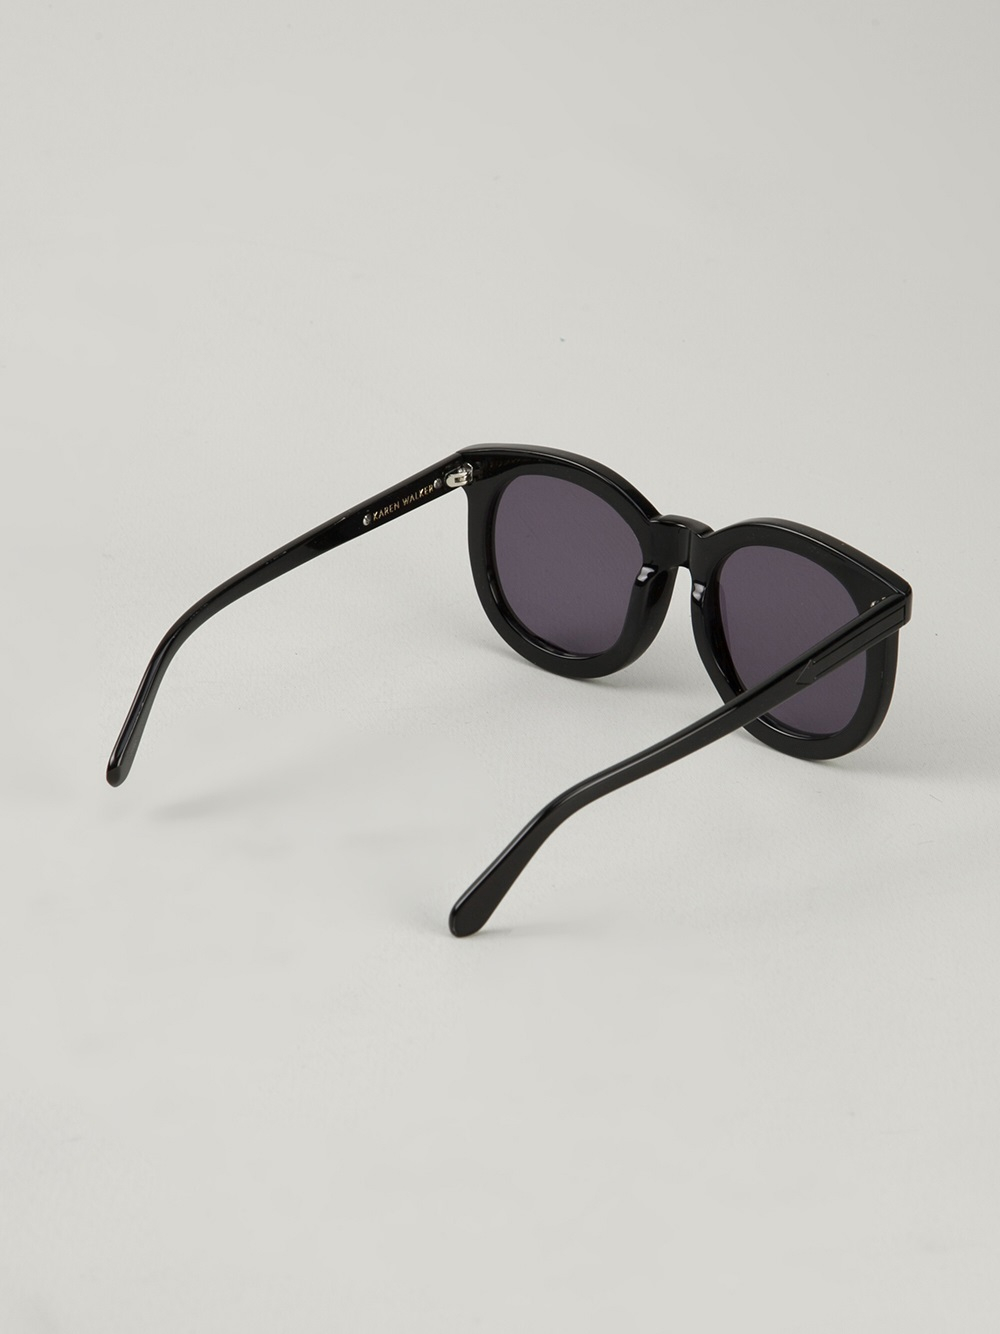 e7125abbb23 Lyst - Karen Walker  Super Worship  Sunglasses in Black